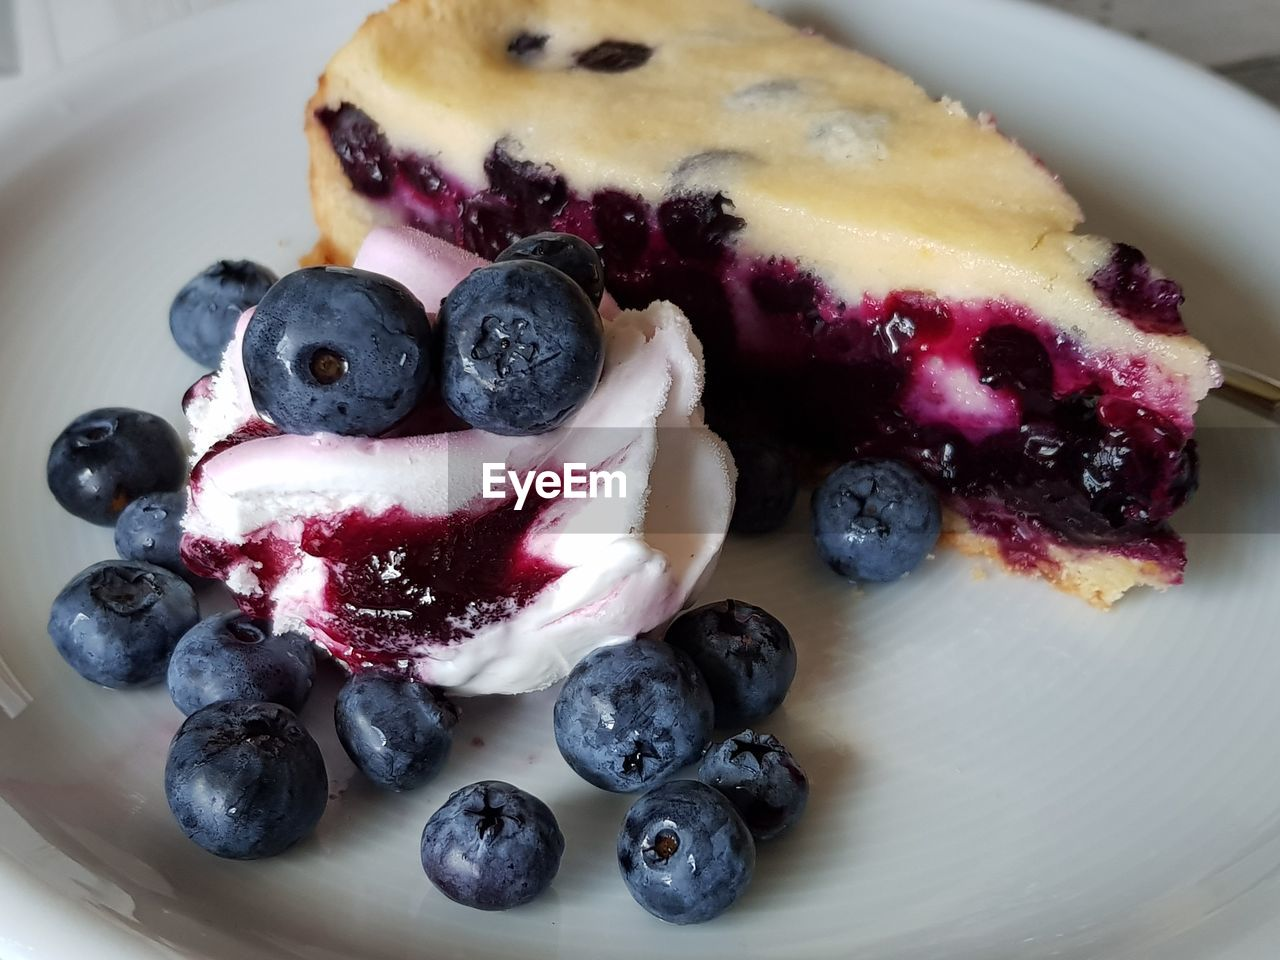 berry fruit, food, food and drink, blueberry, freshness, sweet food, fruit, healthy eating, indulgence, dessert, temptation, sweet, still life, ready-to-eat, close-up, indoors, no people, plate, serving size, baked, baked pastry item, breakfast, tart - dessert, snack